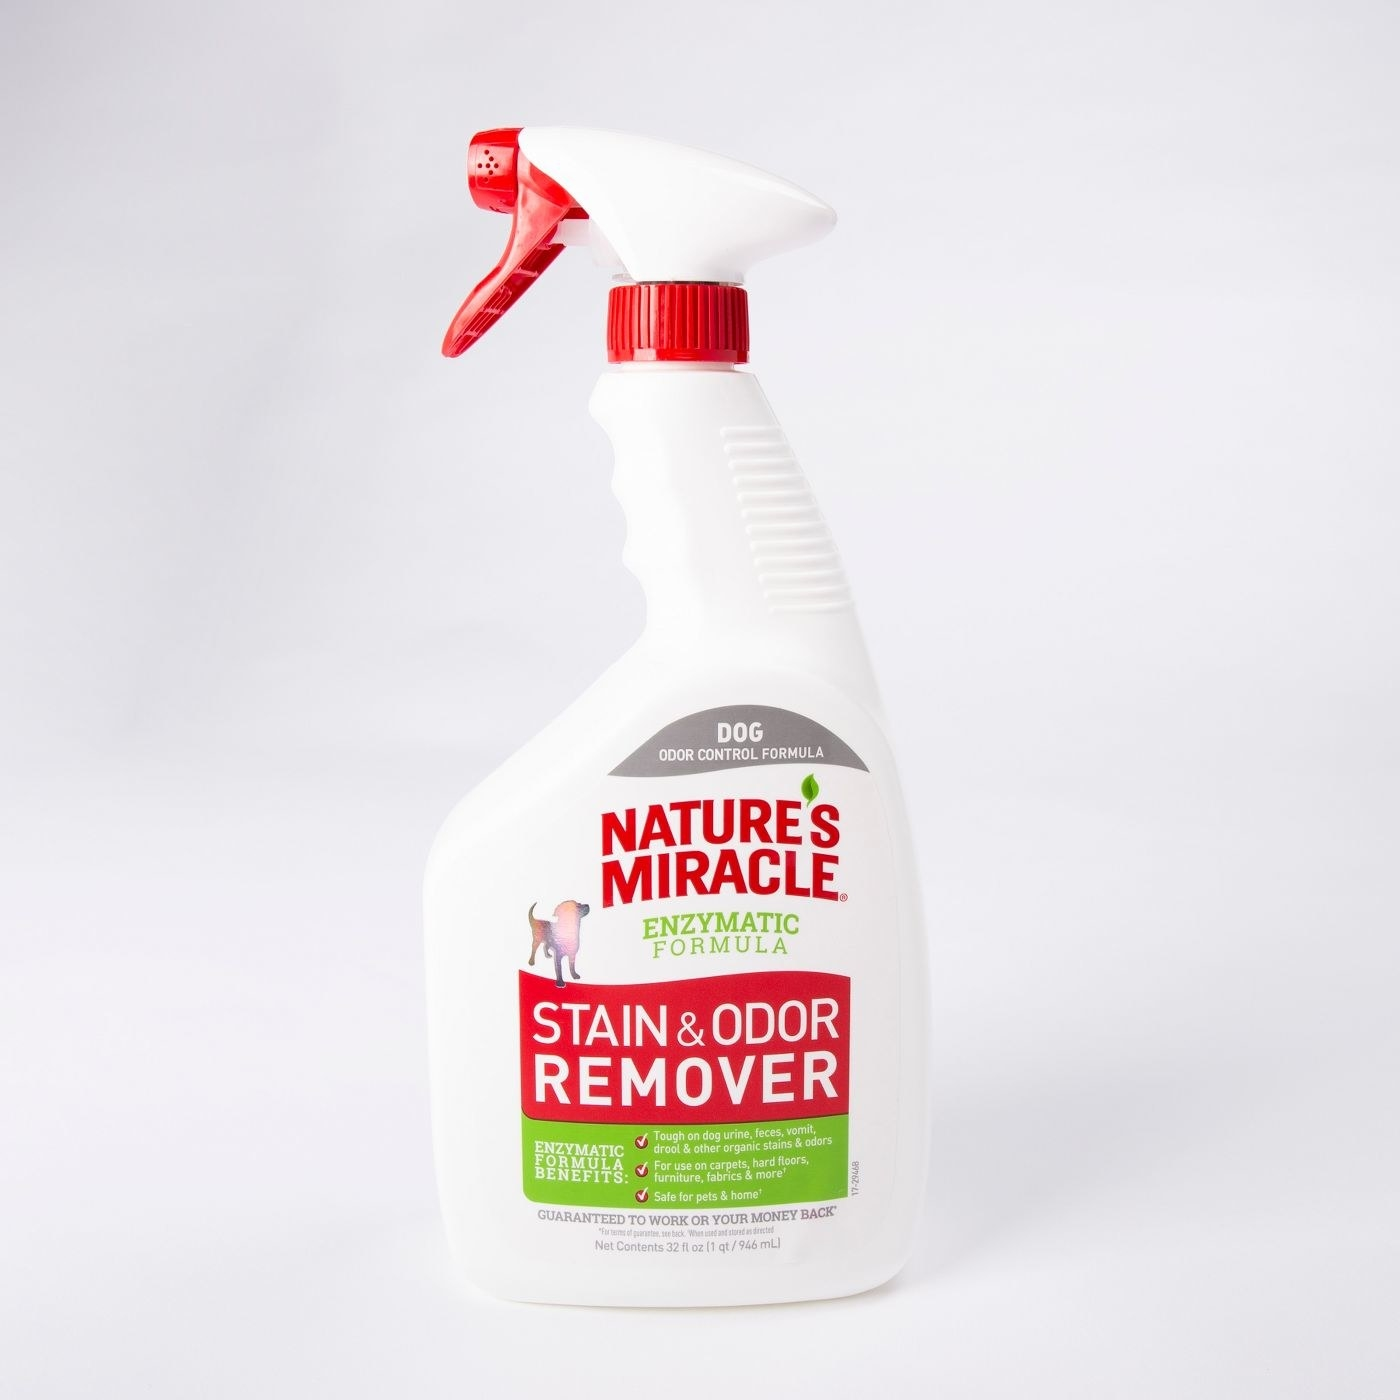 nature miracle's stain and odor remover spray bottle